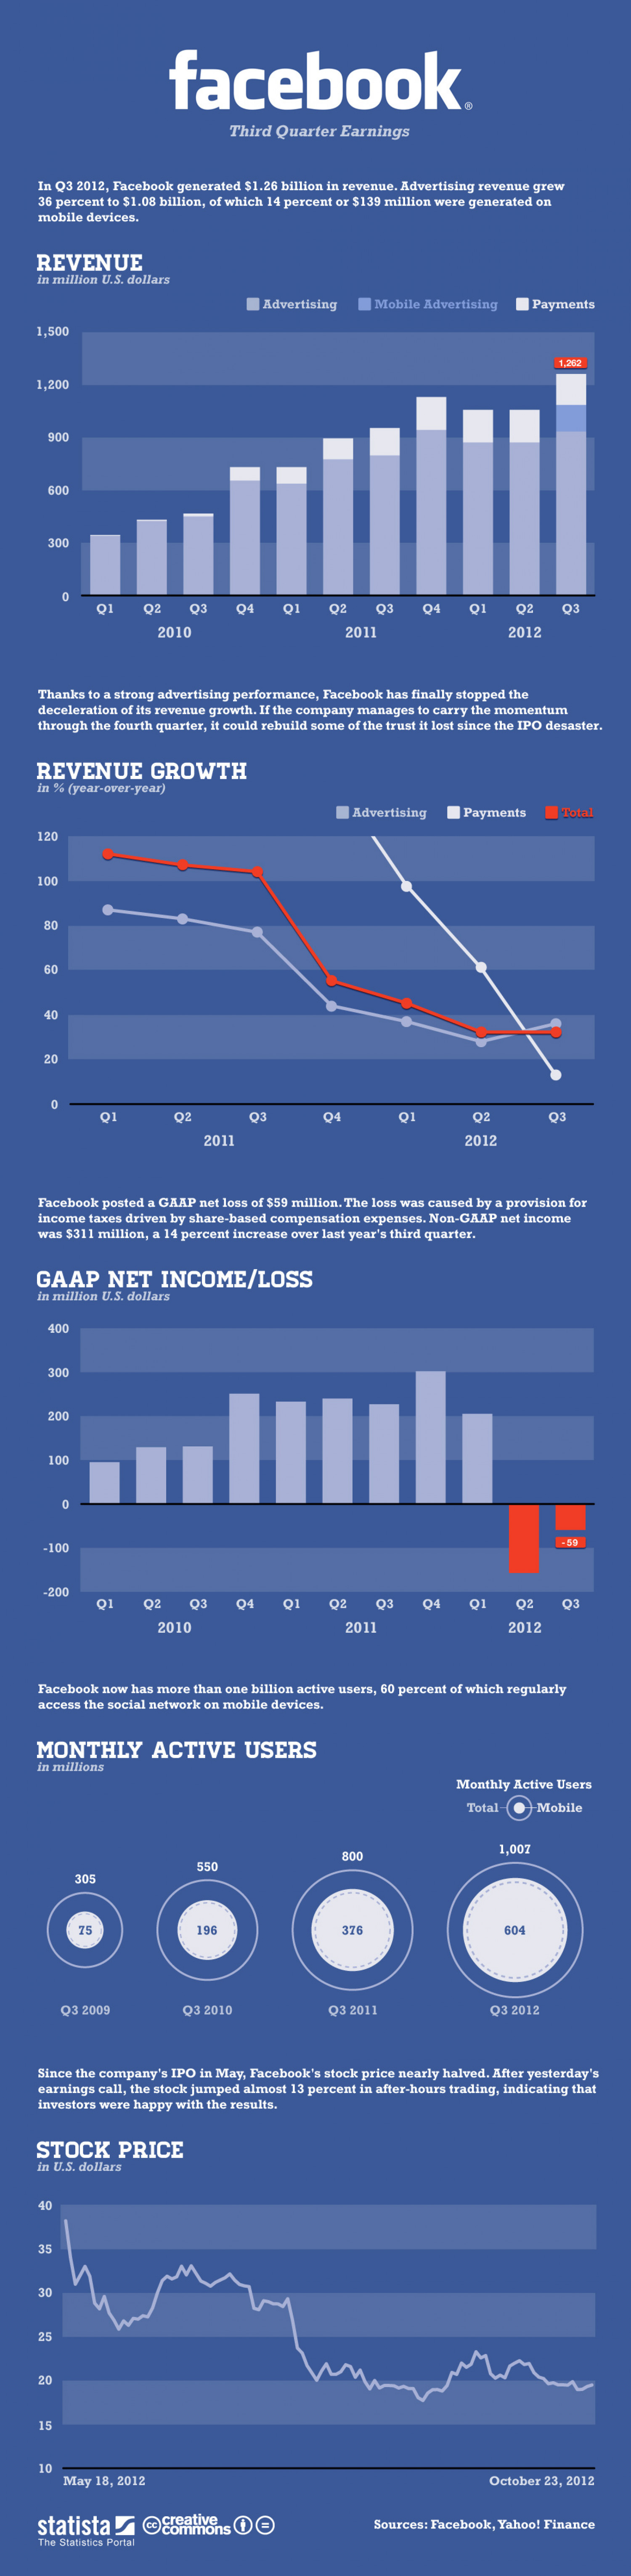 Facebook's Third Quarter Earnings Infographic